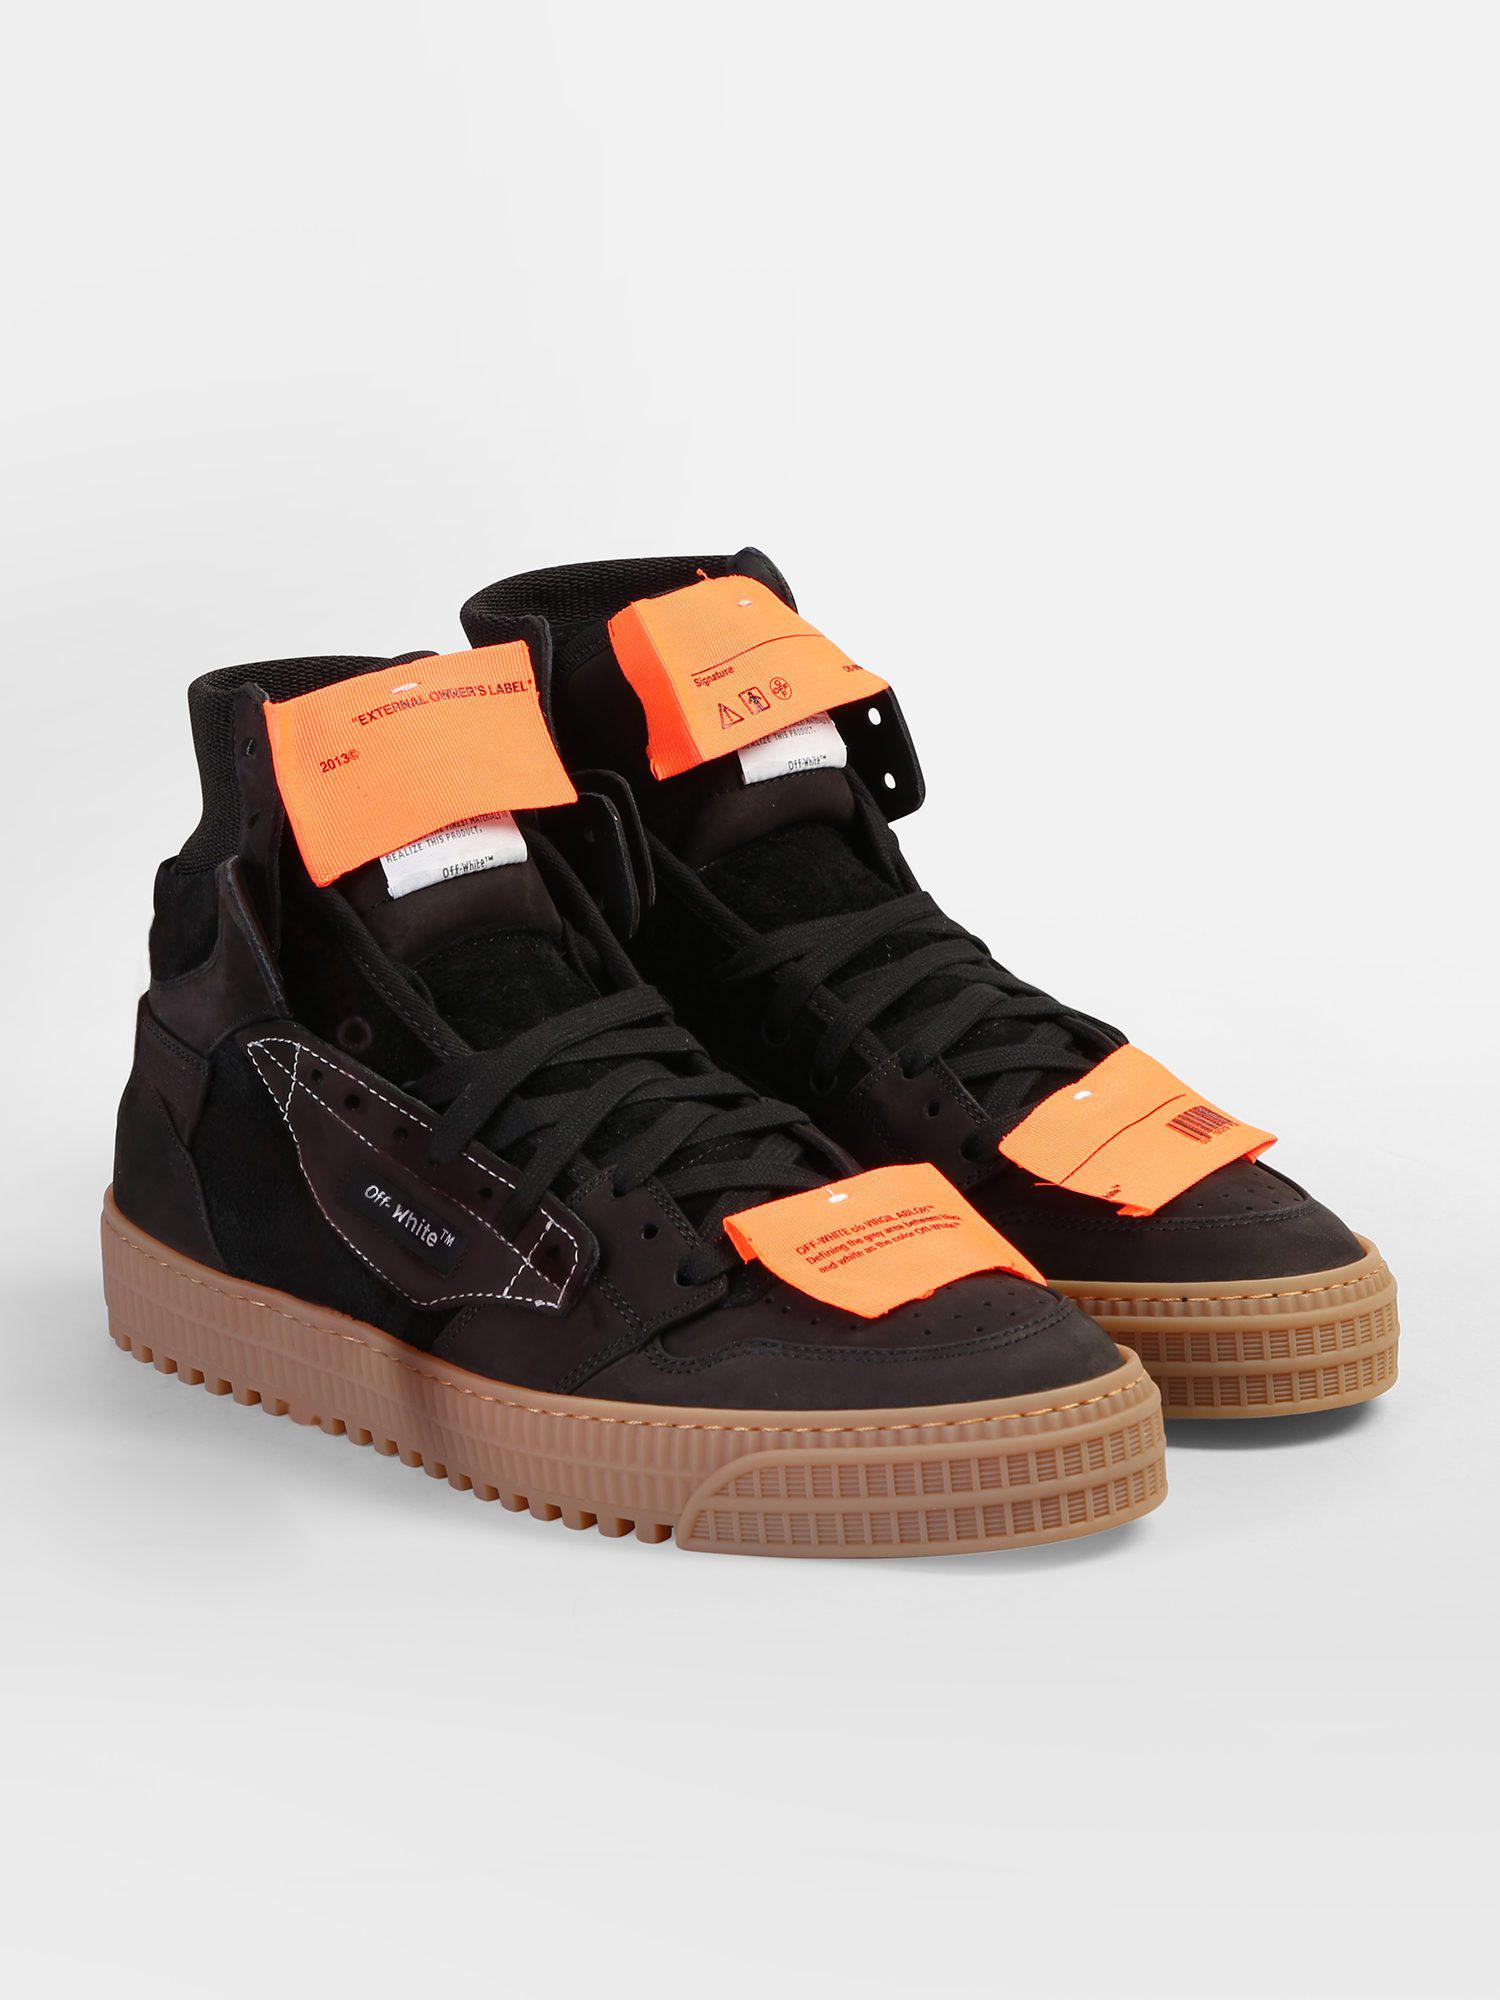 d49a00588242 Off-White C O Virgil Abloh Off Court Suede Leather Sneakers in Black for Men  - Lyst